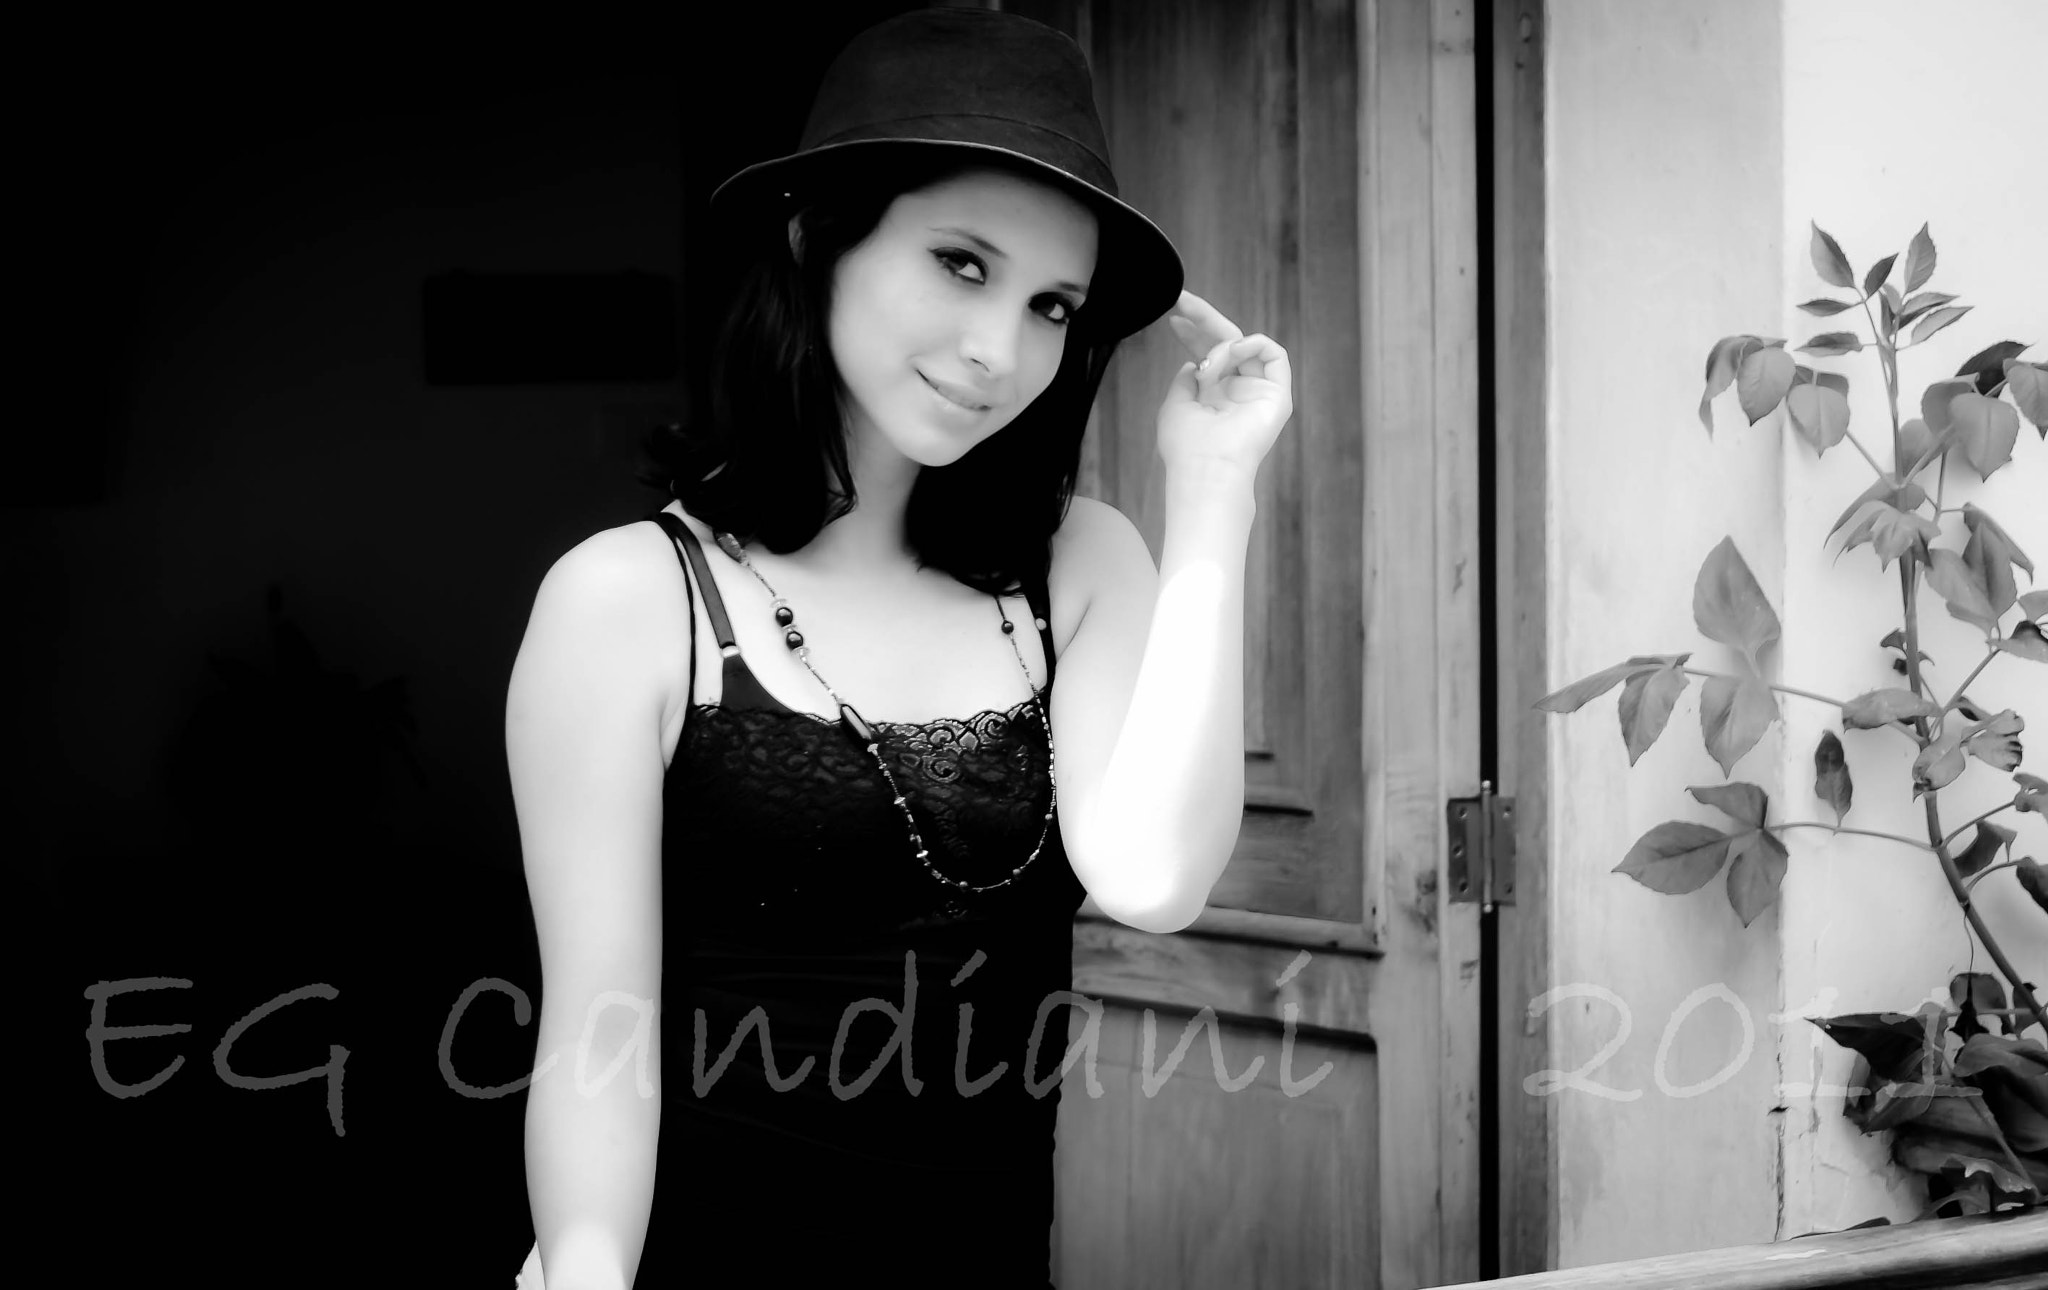 Photograph Tania by EG Candiani Photographer on 500px